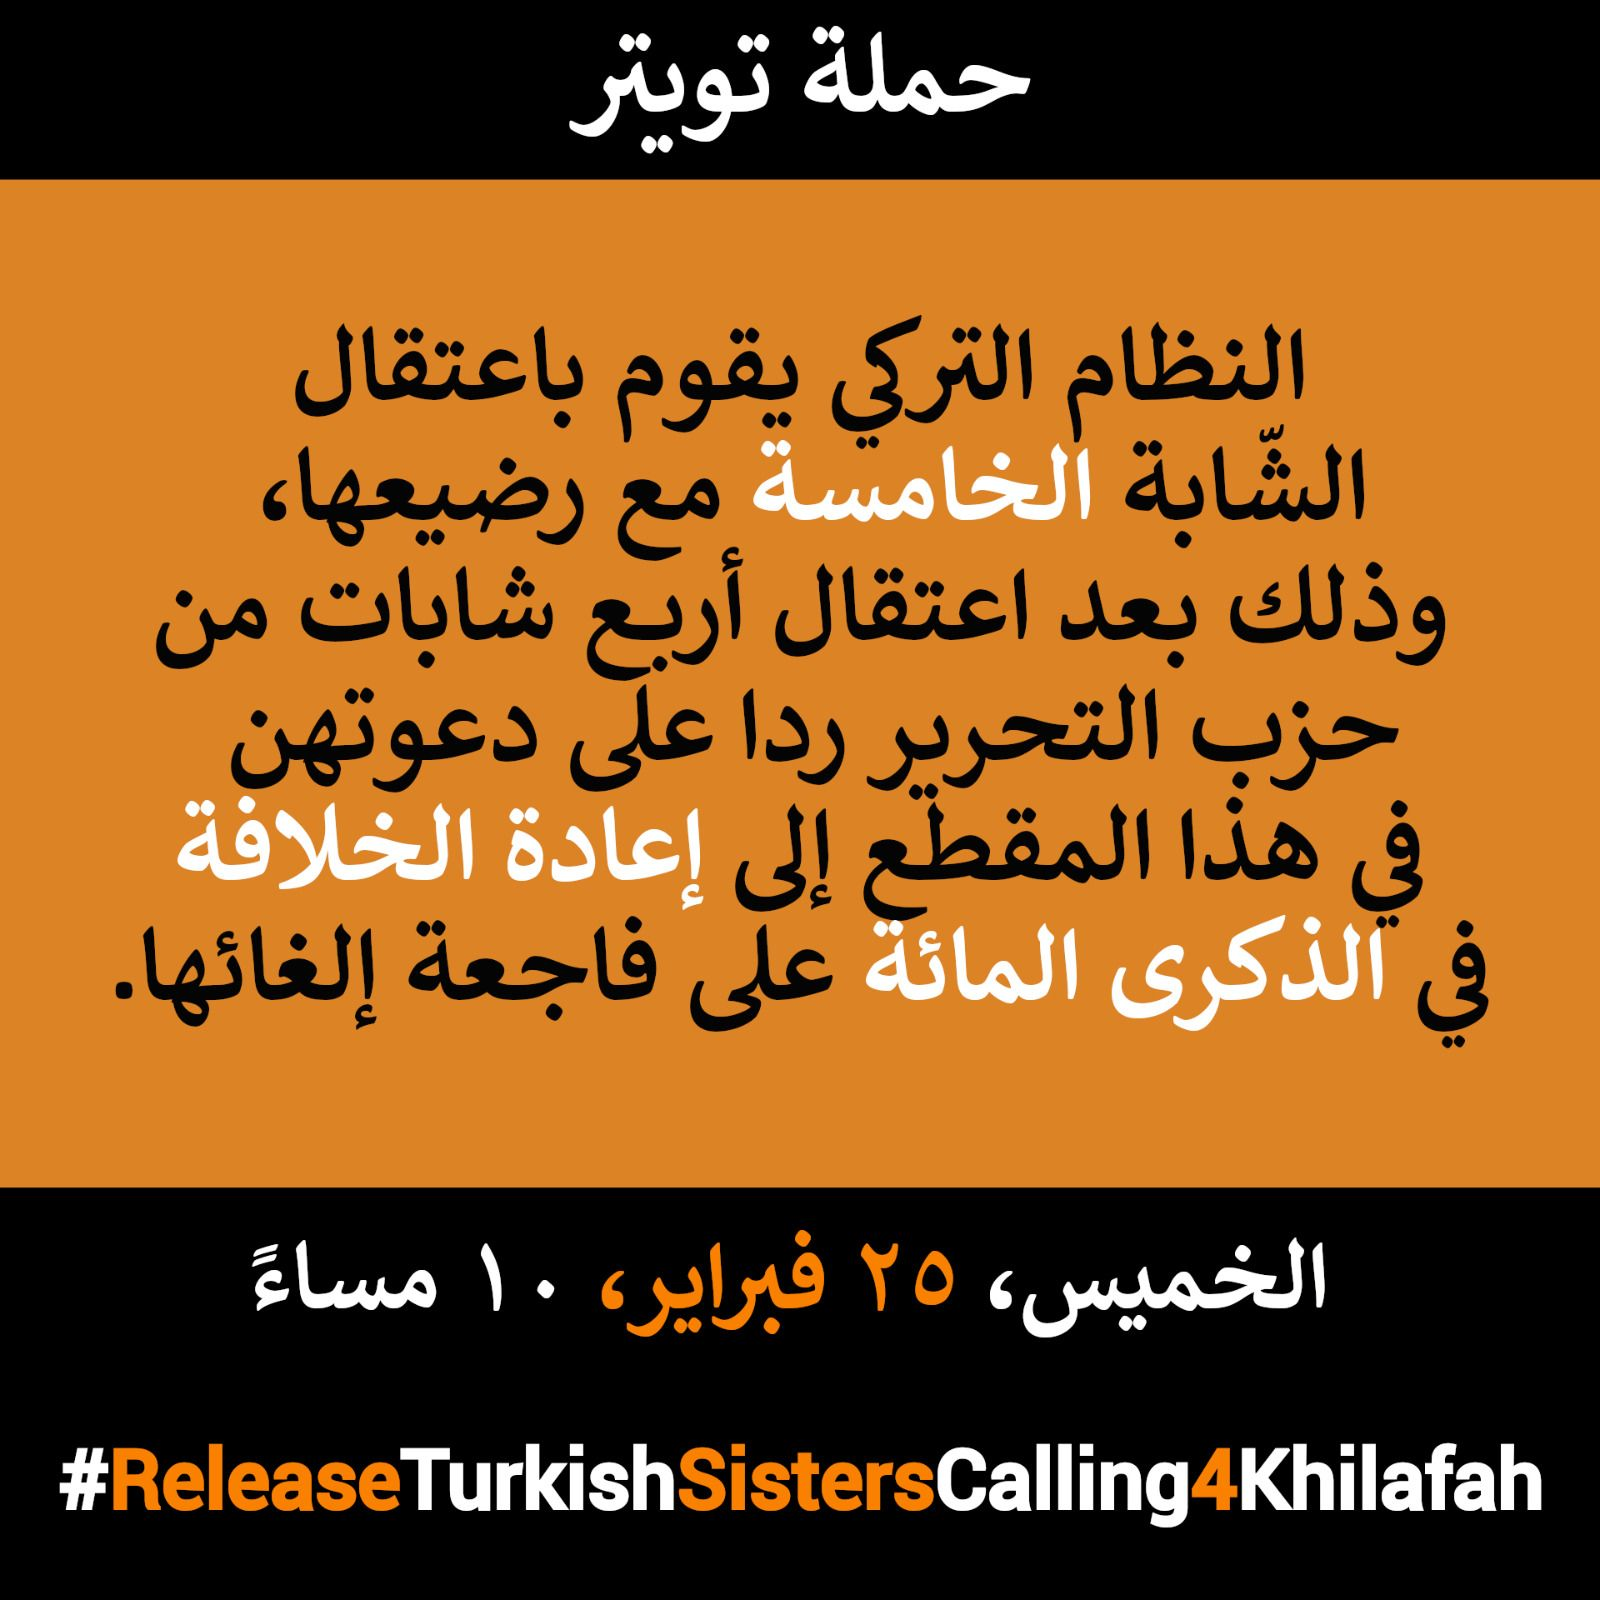 2021 02 23 Release Turkish Sisters Calling 4 Khilafah AR